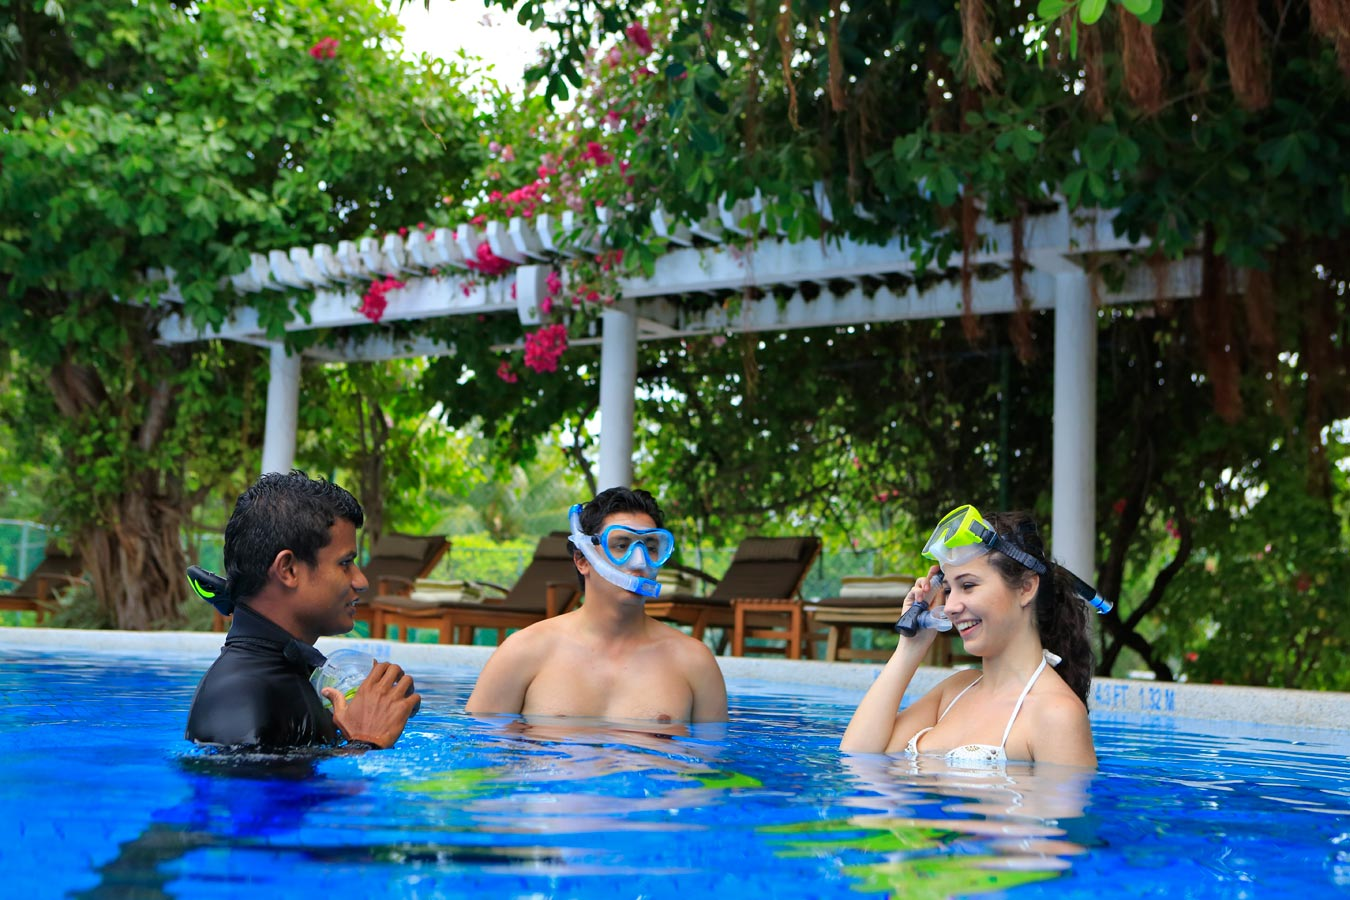 Snorkelling Lesson in the Maldives Islands image| Kurumba Maldives Resort